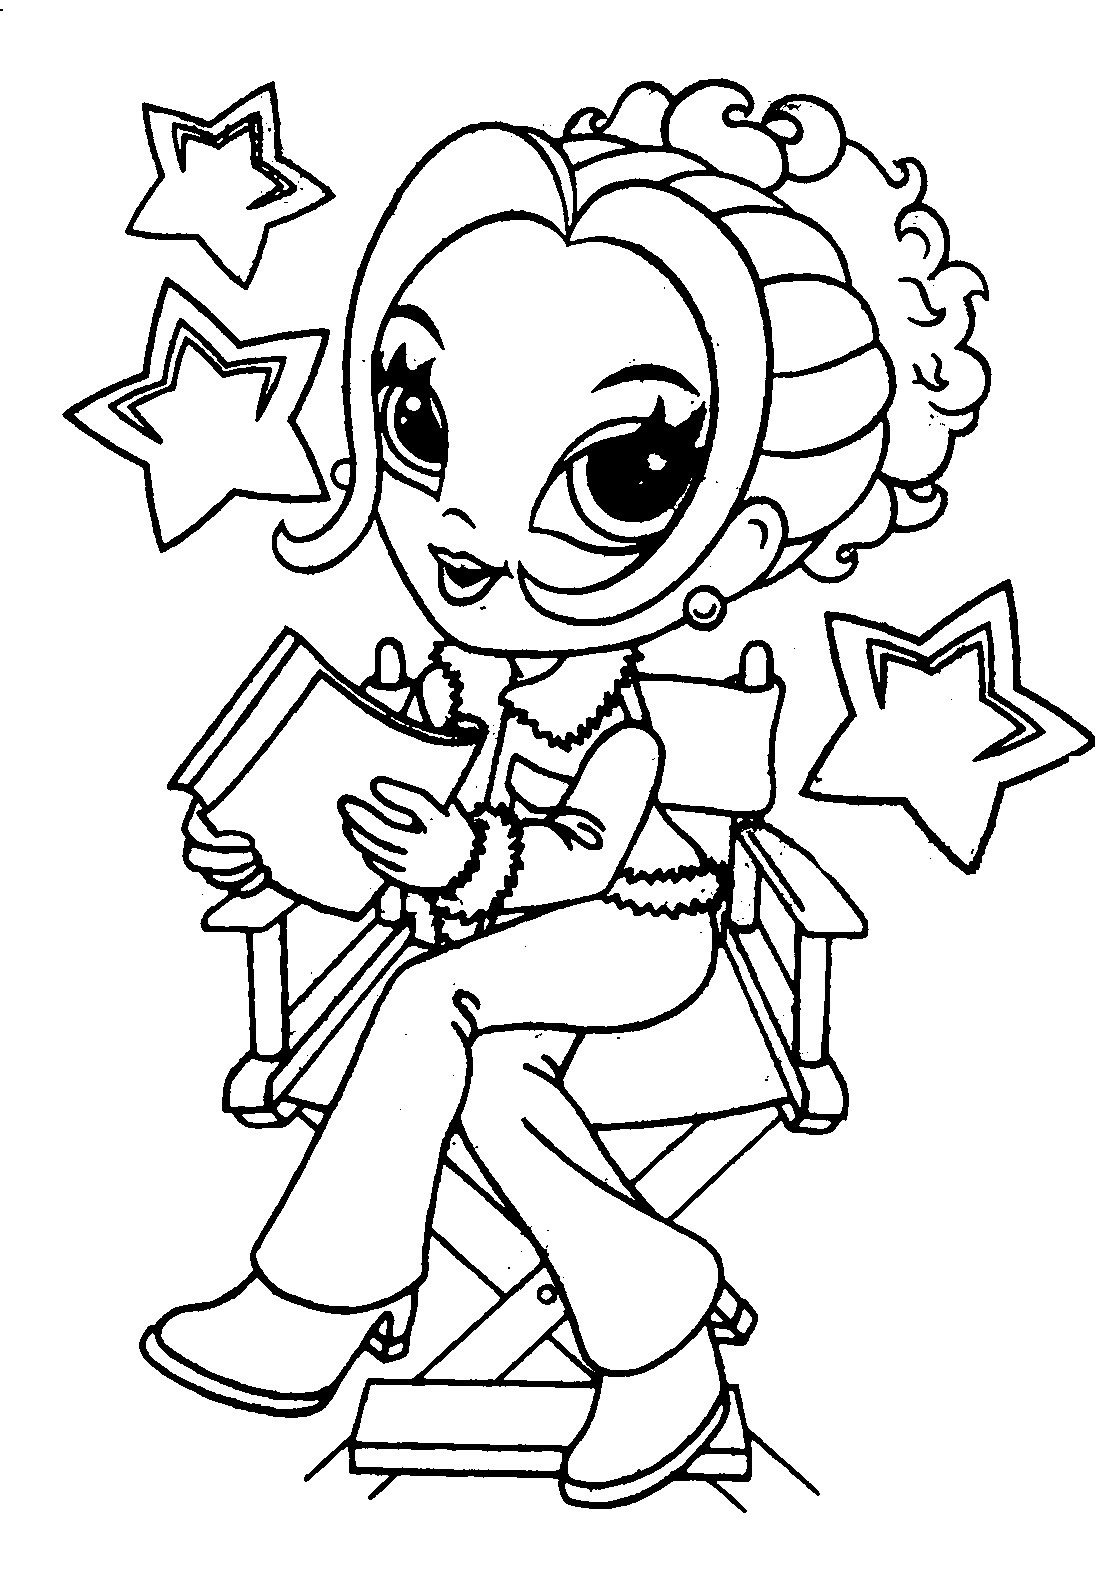 coloring sheet coloring pictures for kids coloring sheet coloring pictures for kids coloring pictures sheet coloring for kids